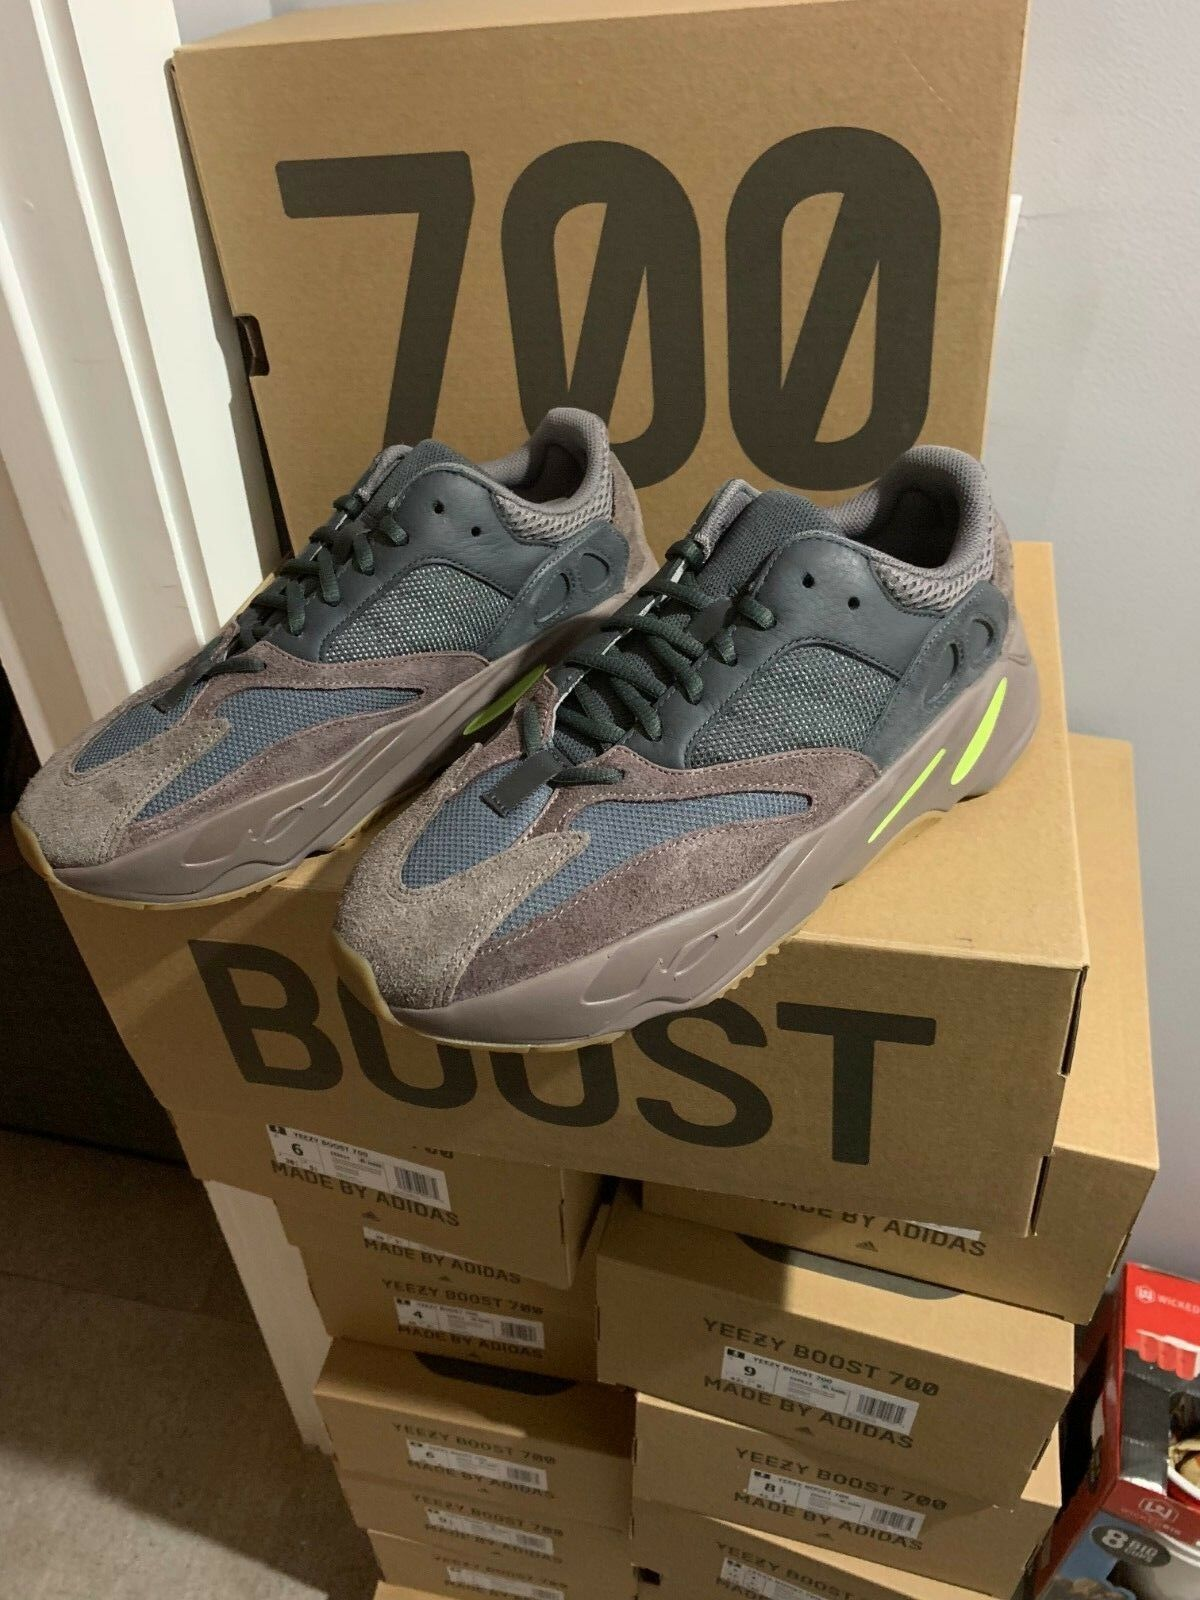 Adidas Yeezy Boost 700  Mauve  WAVE RUNNER  Authentic Size 4 -14 EE9614 Kanye